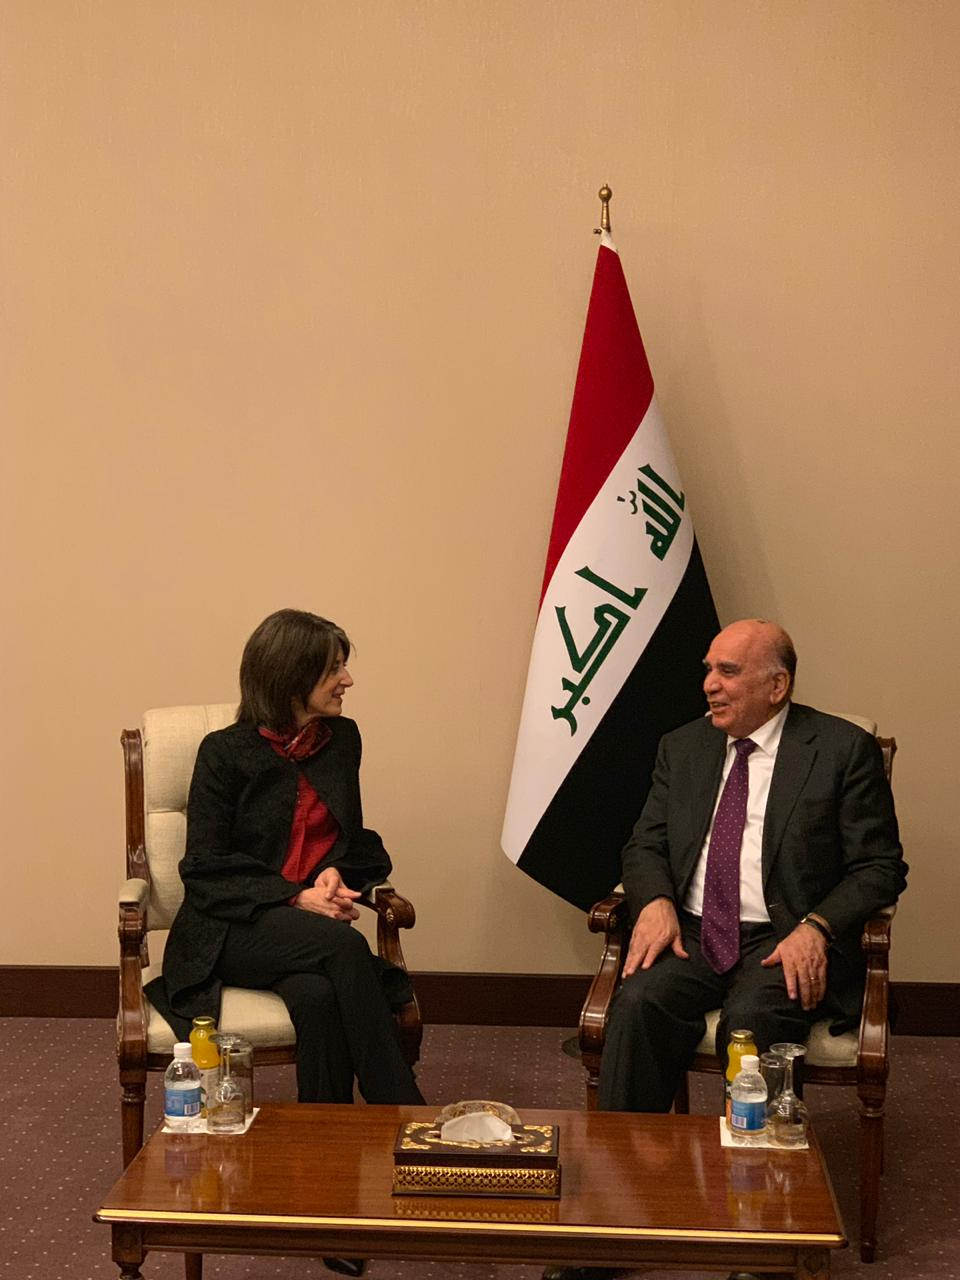 Saleh confirms Iraq's determination to strengthen relations with America WhatsApp%20Image%202019-03-05%20at%2011.00.51%20PM